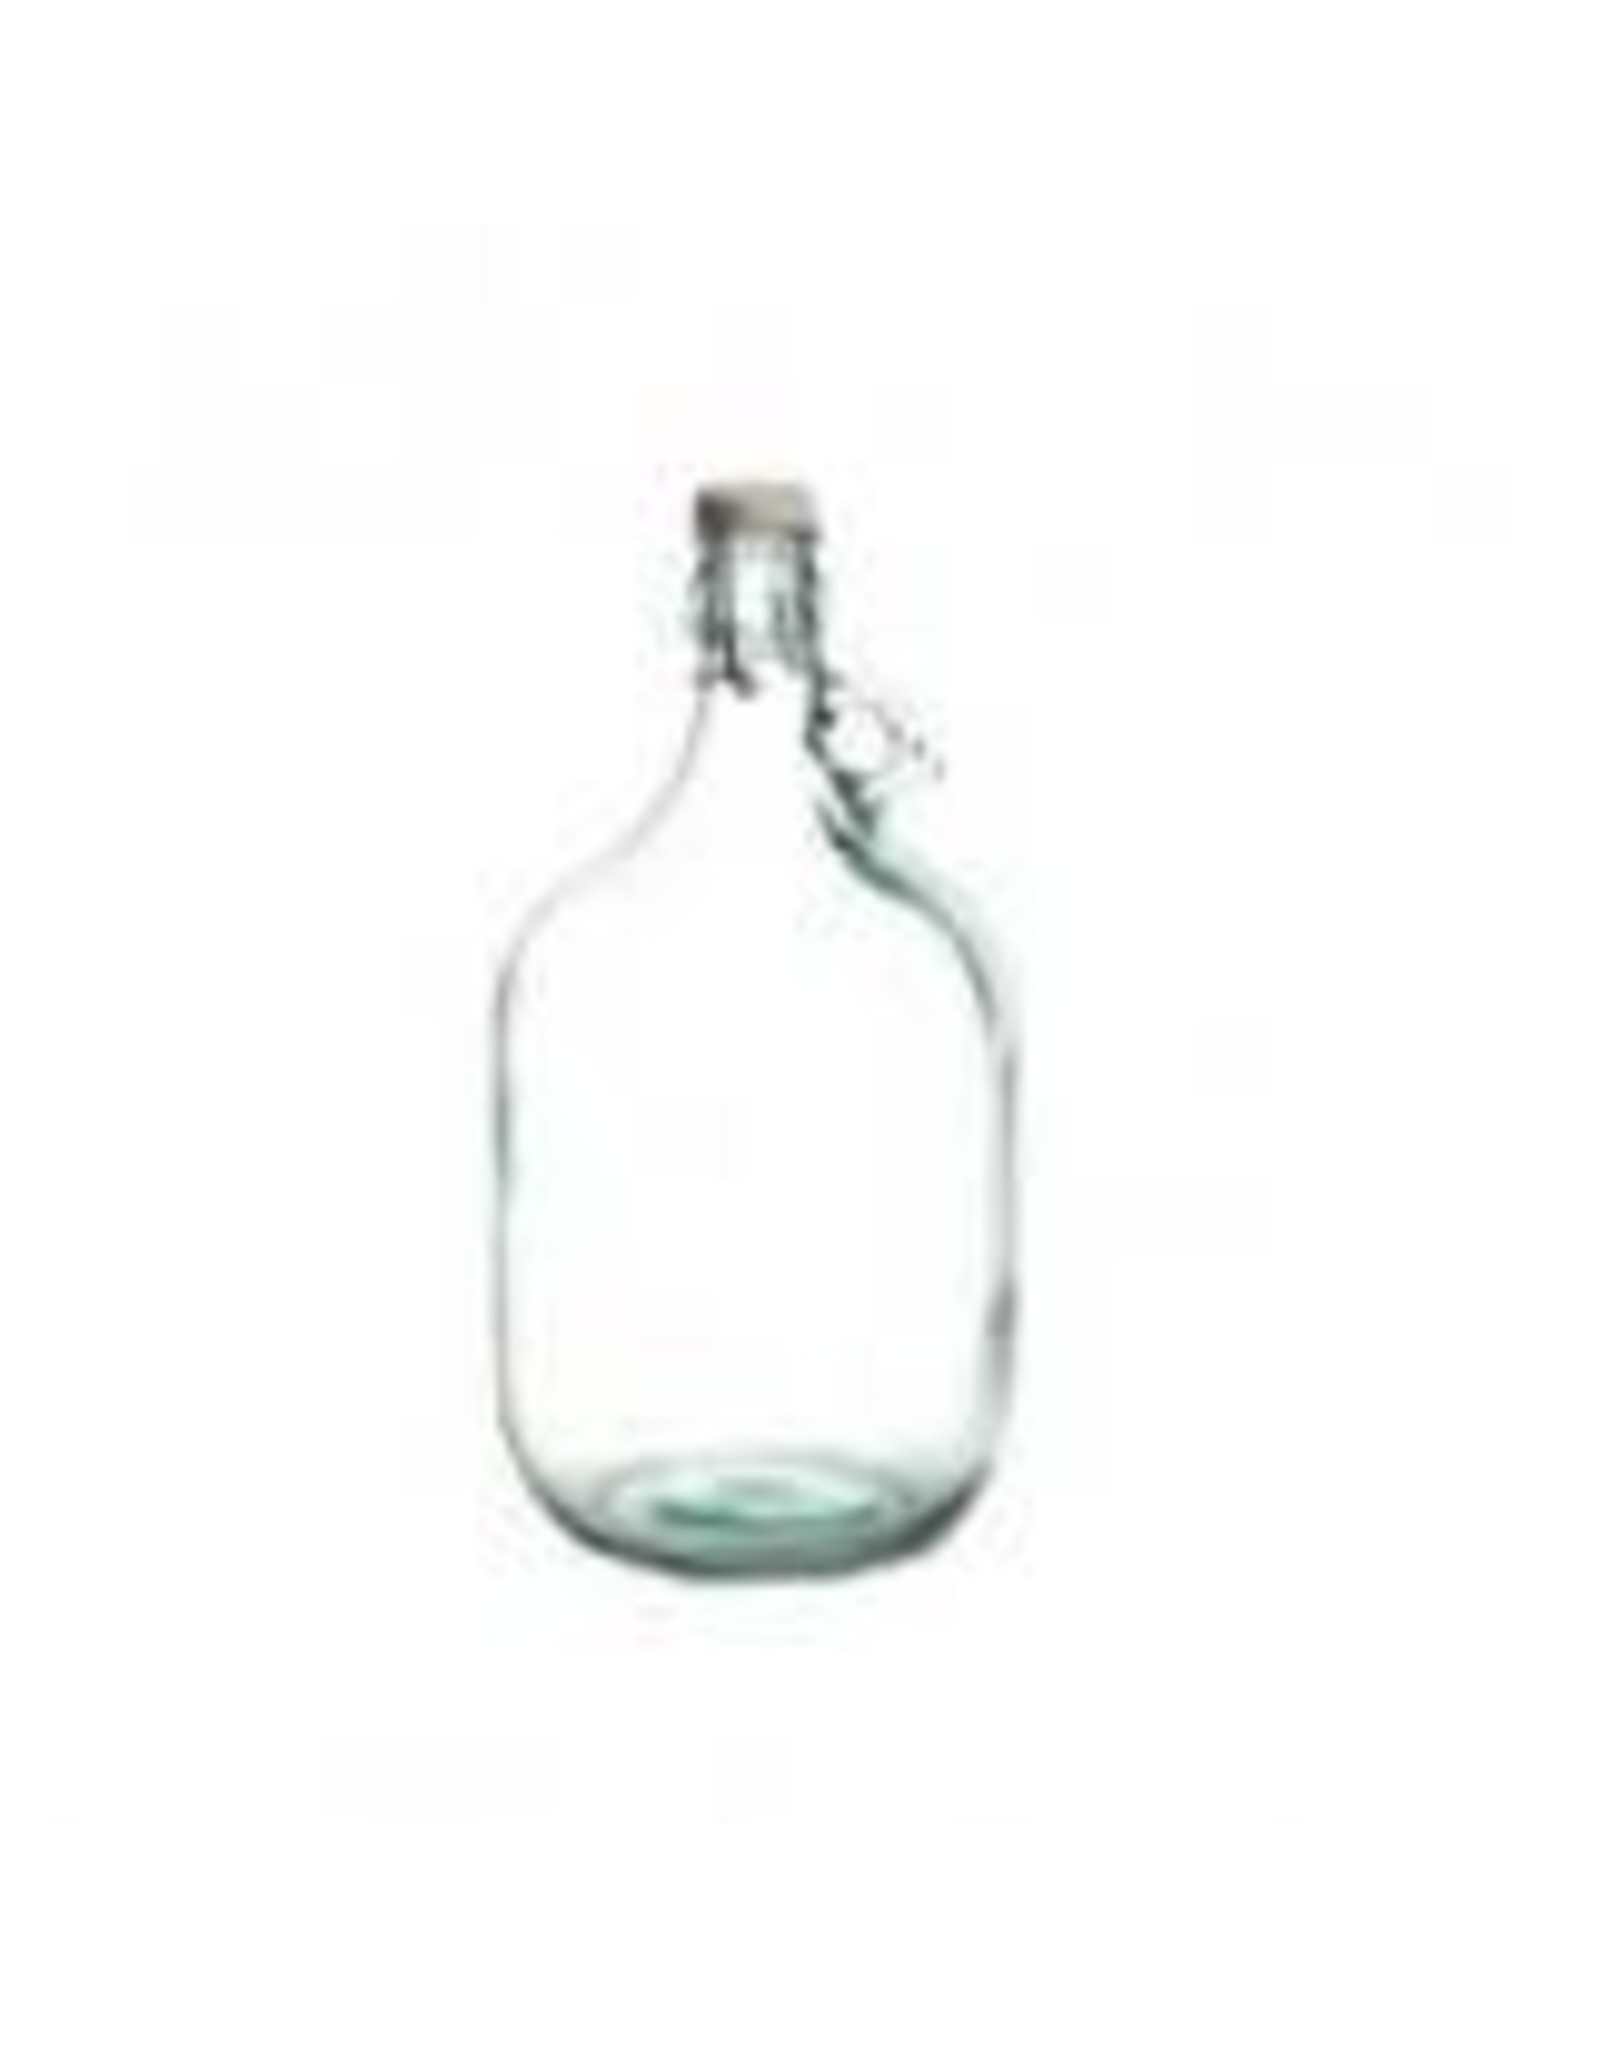 5 LITRE GLASS DAMA WITH SWING